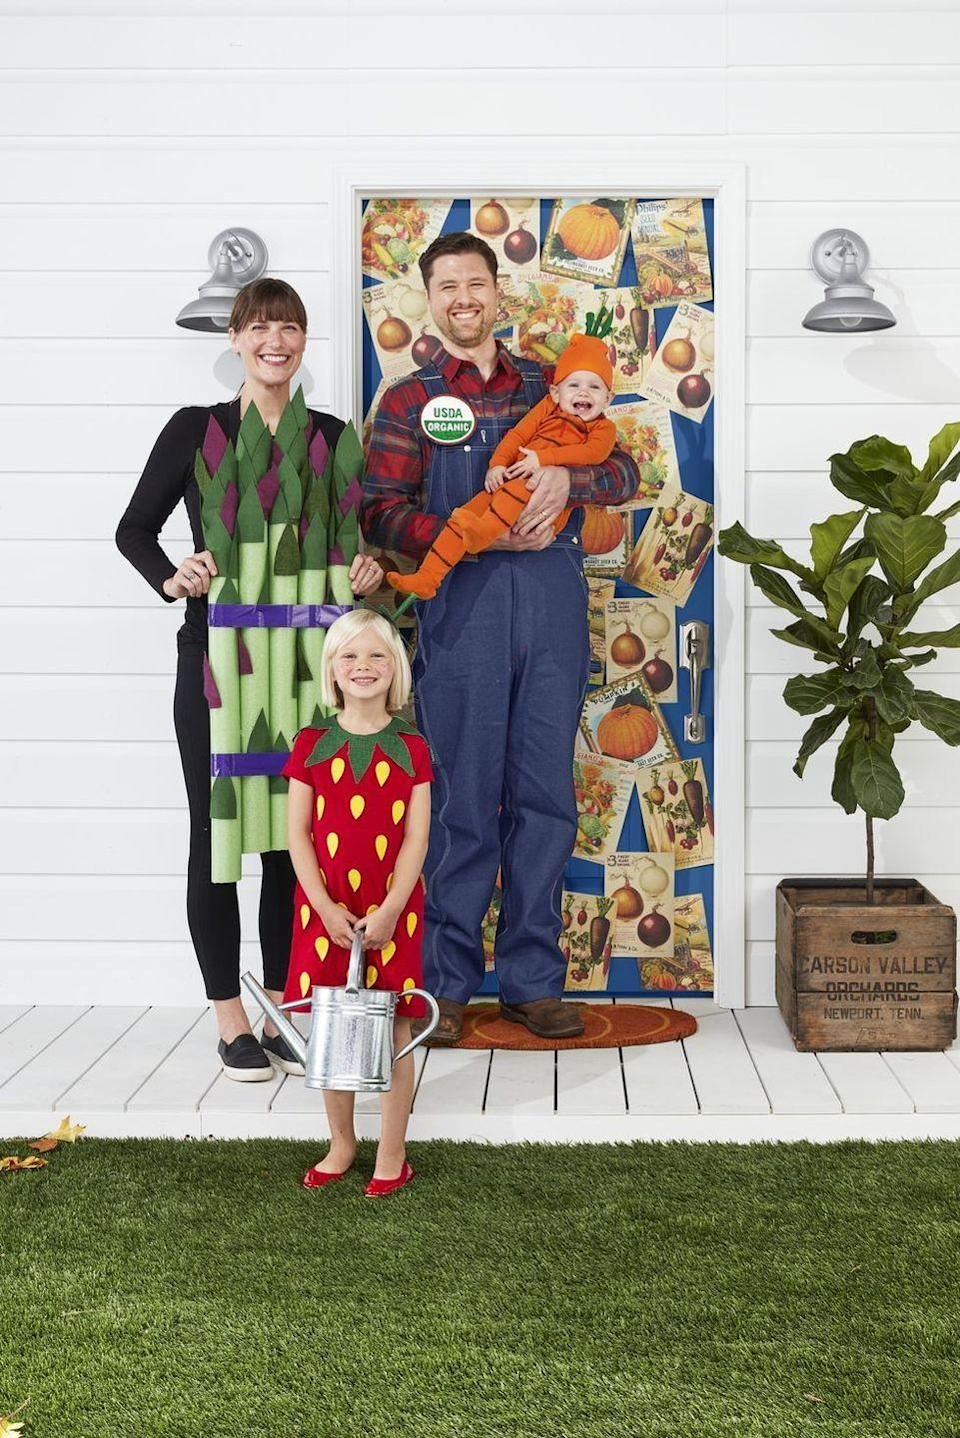 "<p>This adorable DIY family costume calls for one farmer in overalls, alongside some of the best veggies and fruits! </p><p><strong>RELATED: </strong><a href=""https://www.goodhousekeeping.com/holidays/halloween-ideas/g28106766/family-halloween-costumes/"" rel=""nofollow noopener"" target=""_blank"" data-ylk=""slk:28 Family Halloween Costume Ideas That'll Please the Whole Family"" class=""link rapid-noclick-resp"">28 Family Halloween Costume Ideas That'll Please the Whole Family</a></p>"